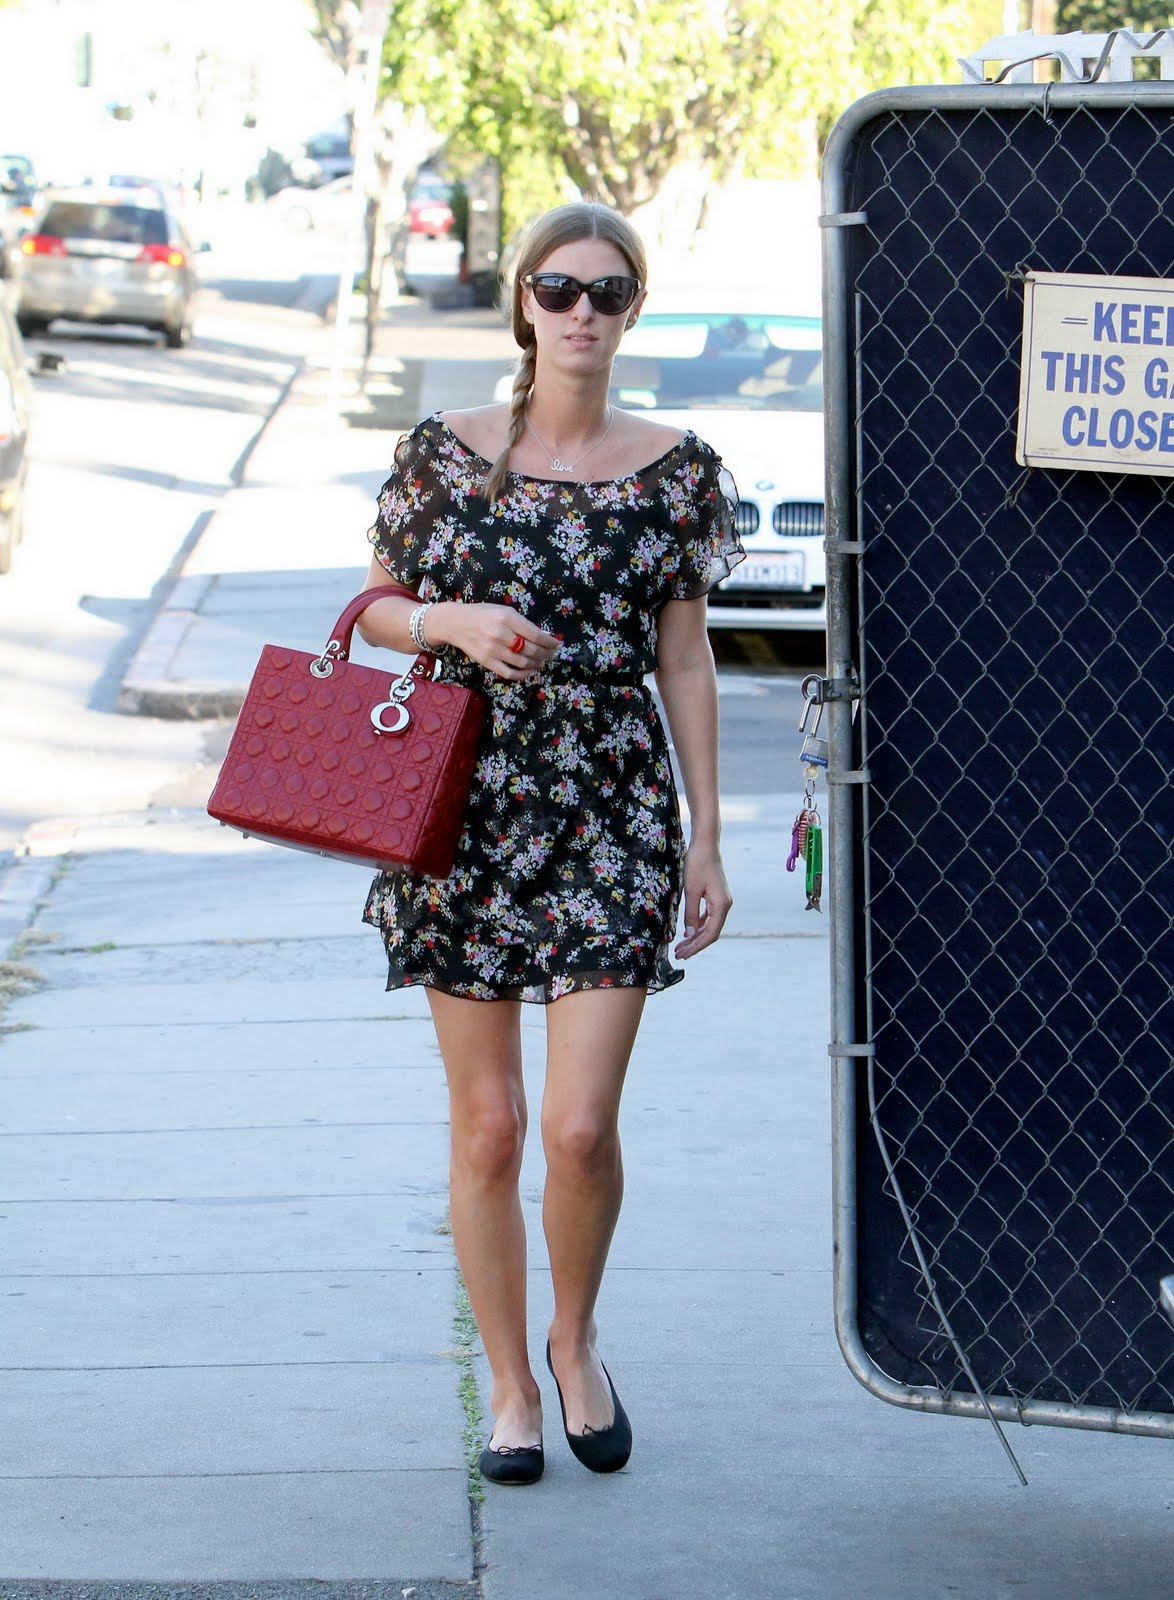 http://4.bp.blogspot.com/-sHdIOq5H0so/TZCXZKwh9mI/AAAAAAAAIrQ/3a6XGYCUveg/s1600/21073_KUGELSCHREIBER_Nicky_Hilton_was_spotted_out_in_Beverly_Hills4_122_633lo.jpg